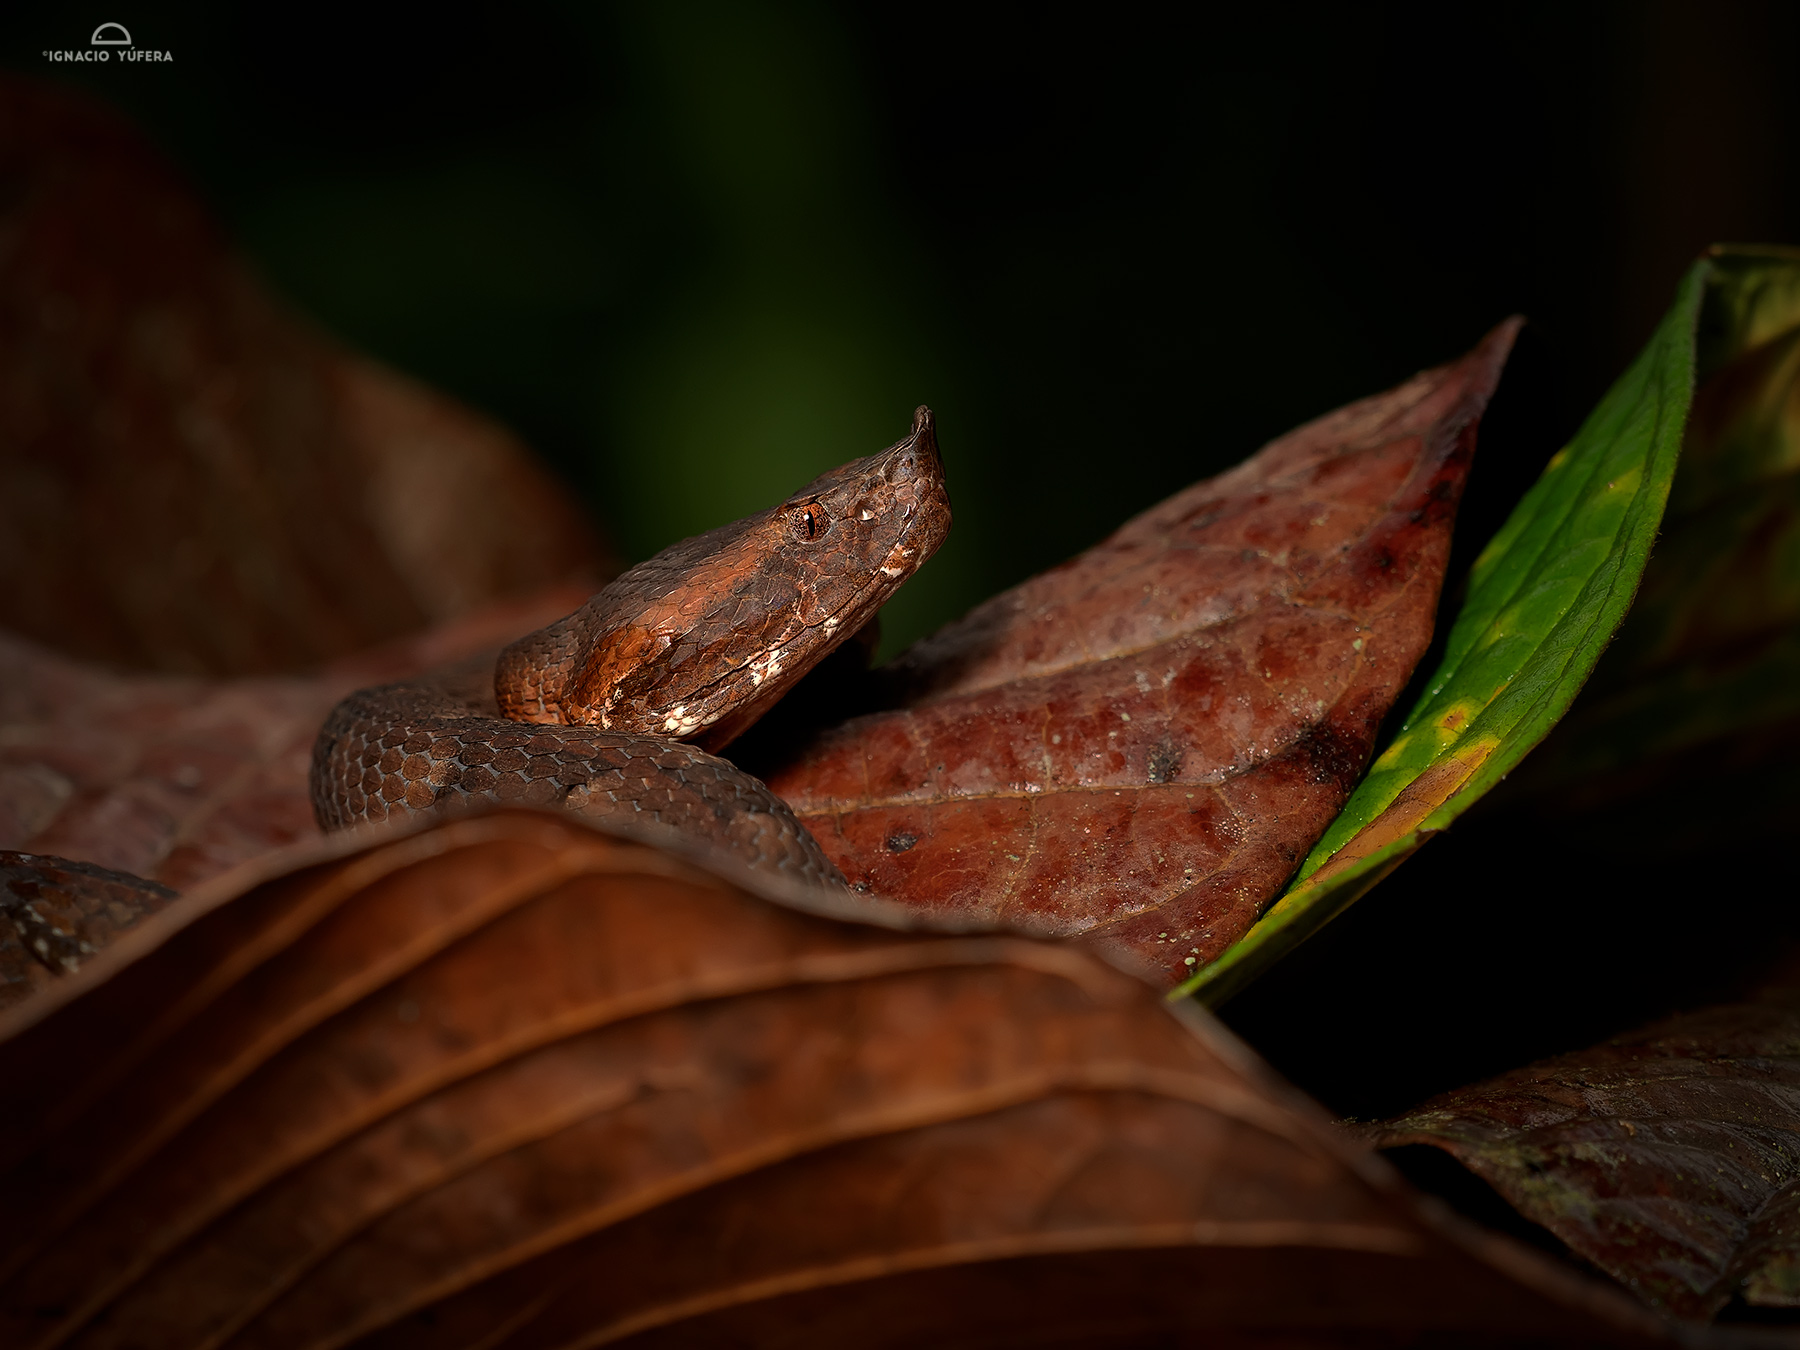 Hognosed Pitviper (Porthidium nasitum), Pital, Costa Rica